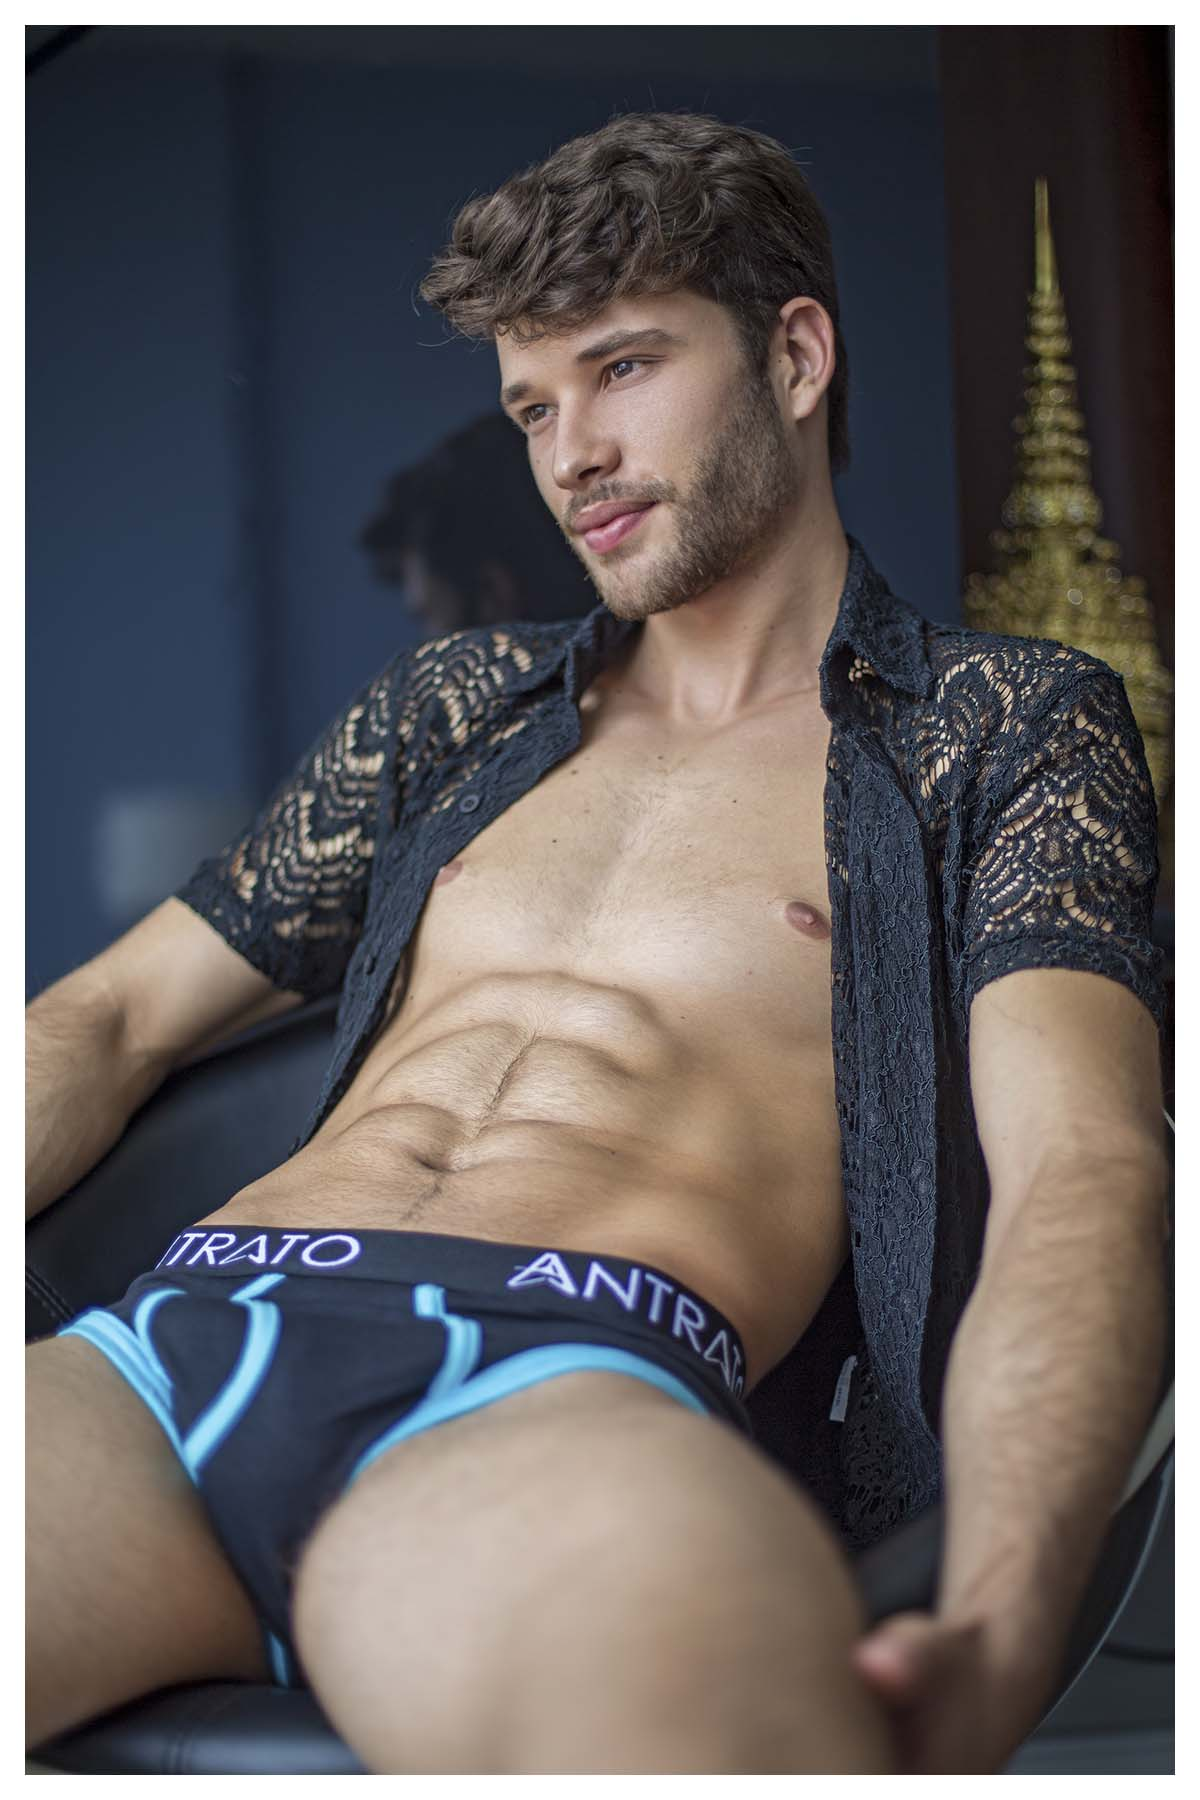 Rodrigo Krauzer by Ronaldo Gutierrez for Brazilian Male Model